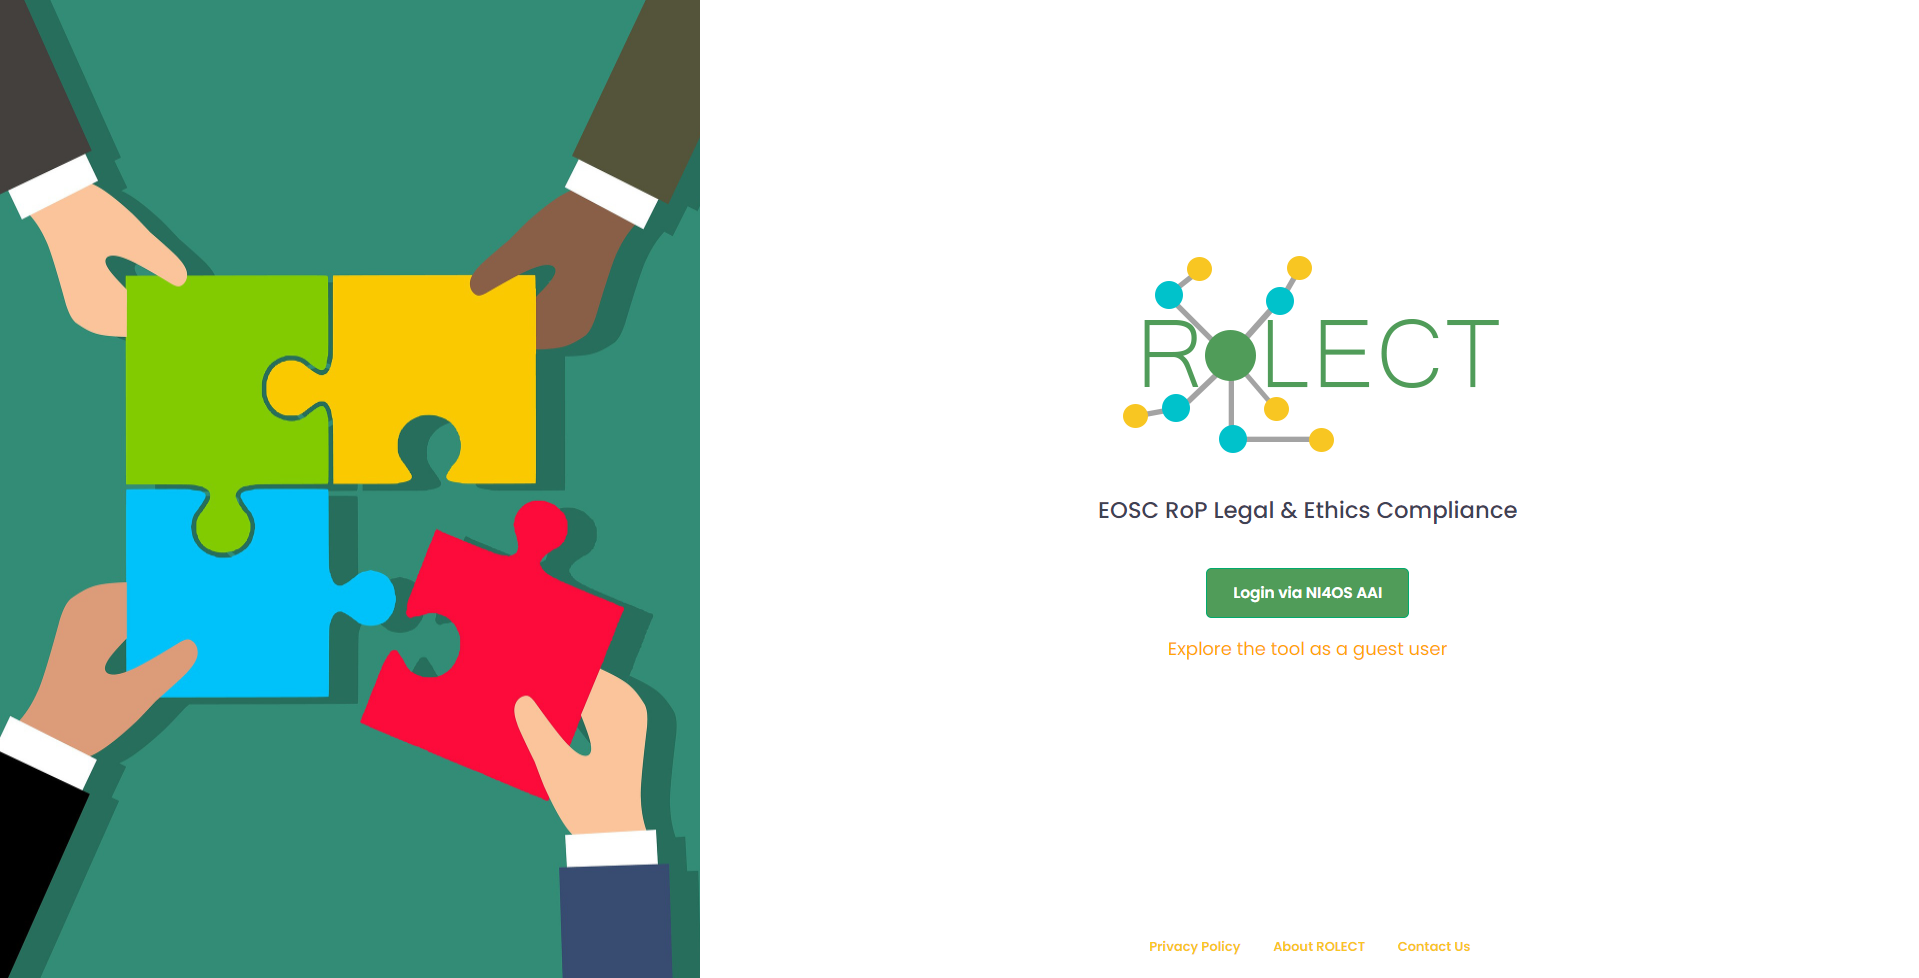 RoLECT landing page